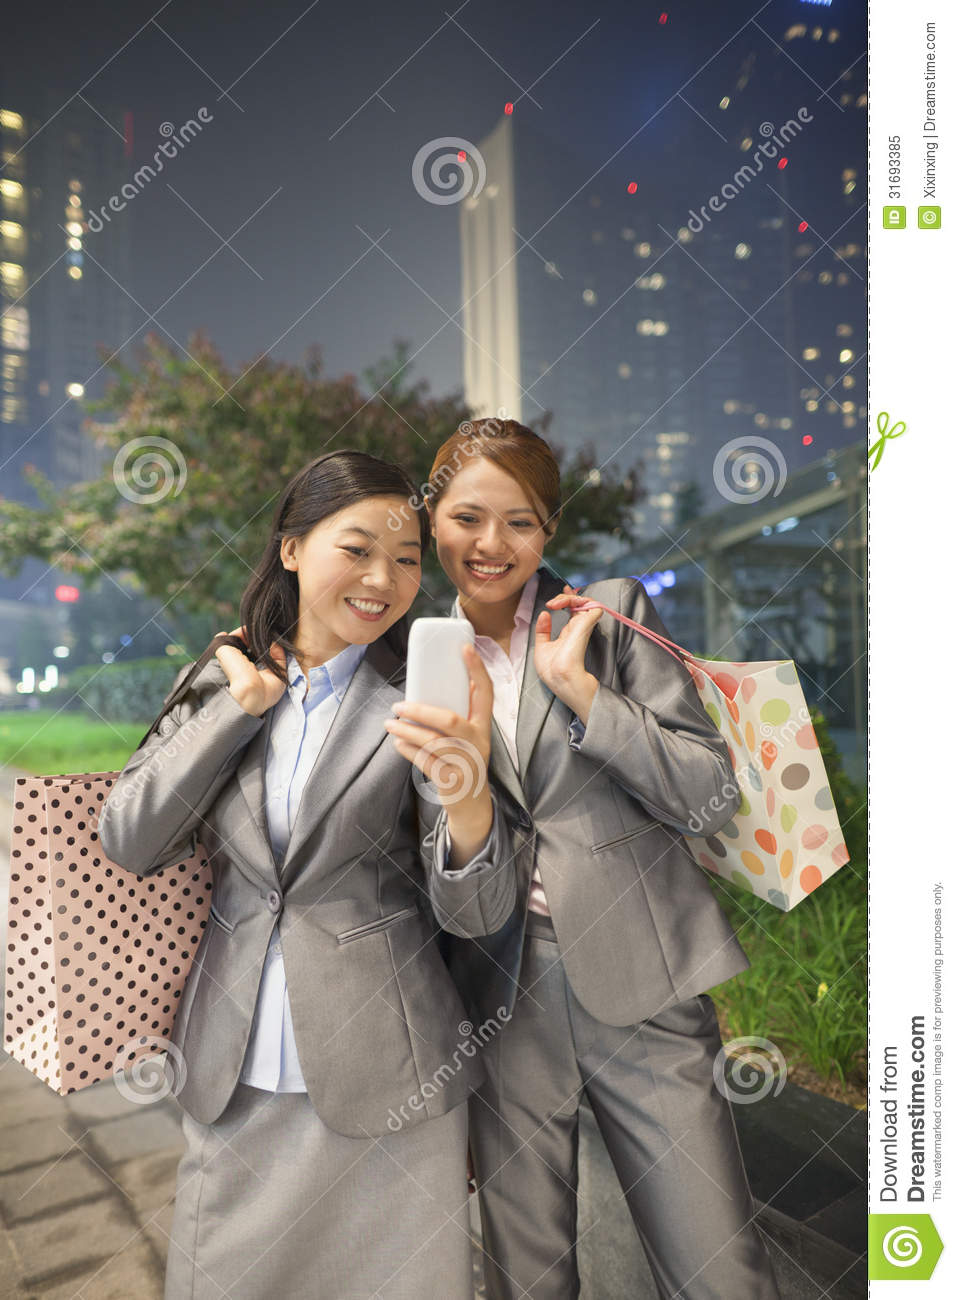 Young businesswomen taking self-portrait with Cell Phone.